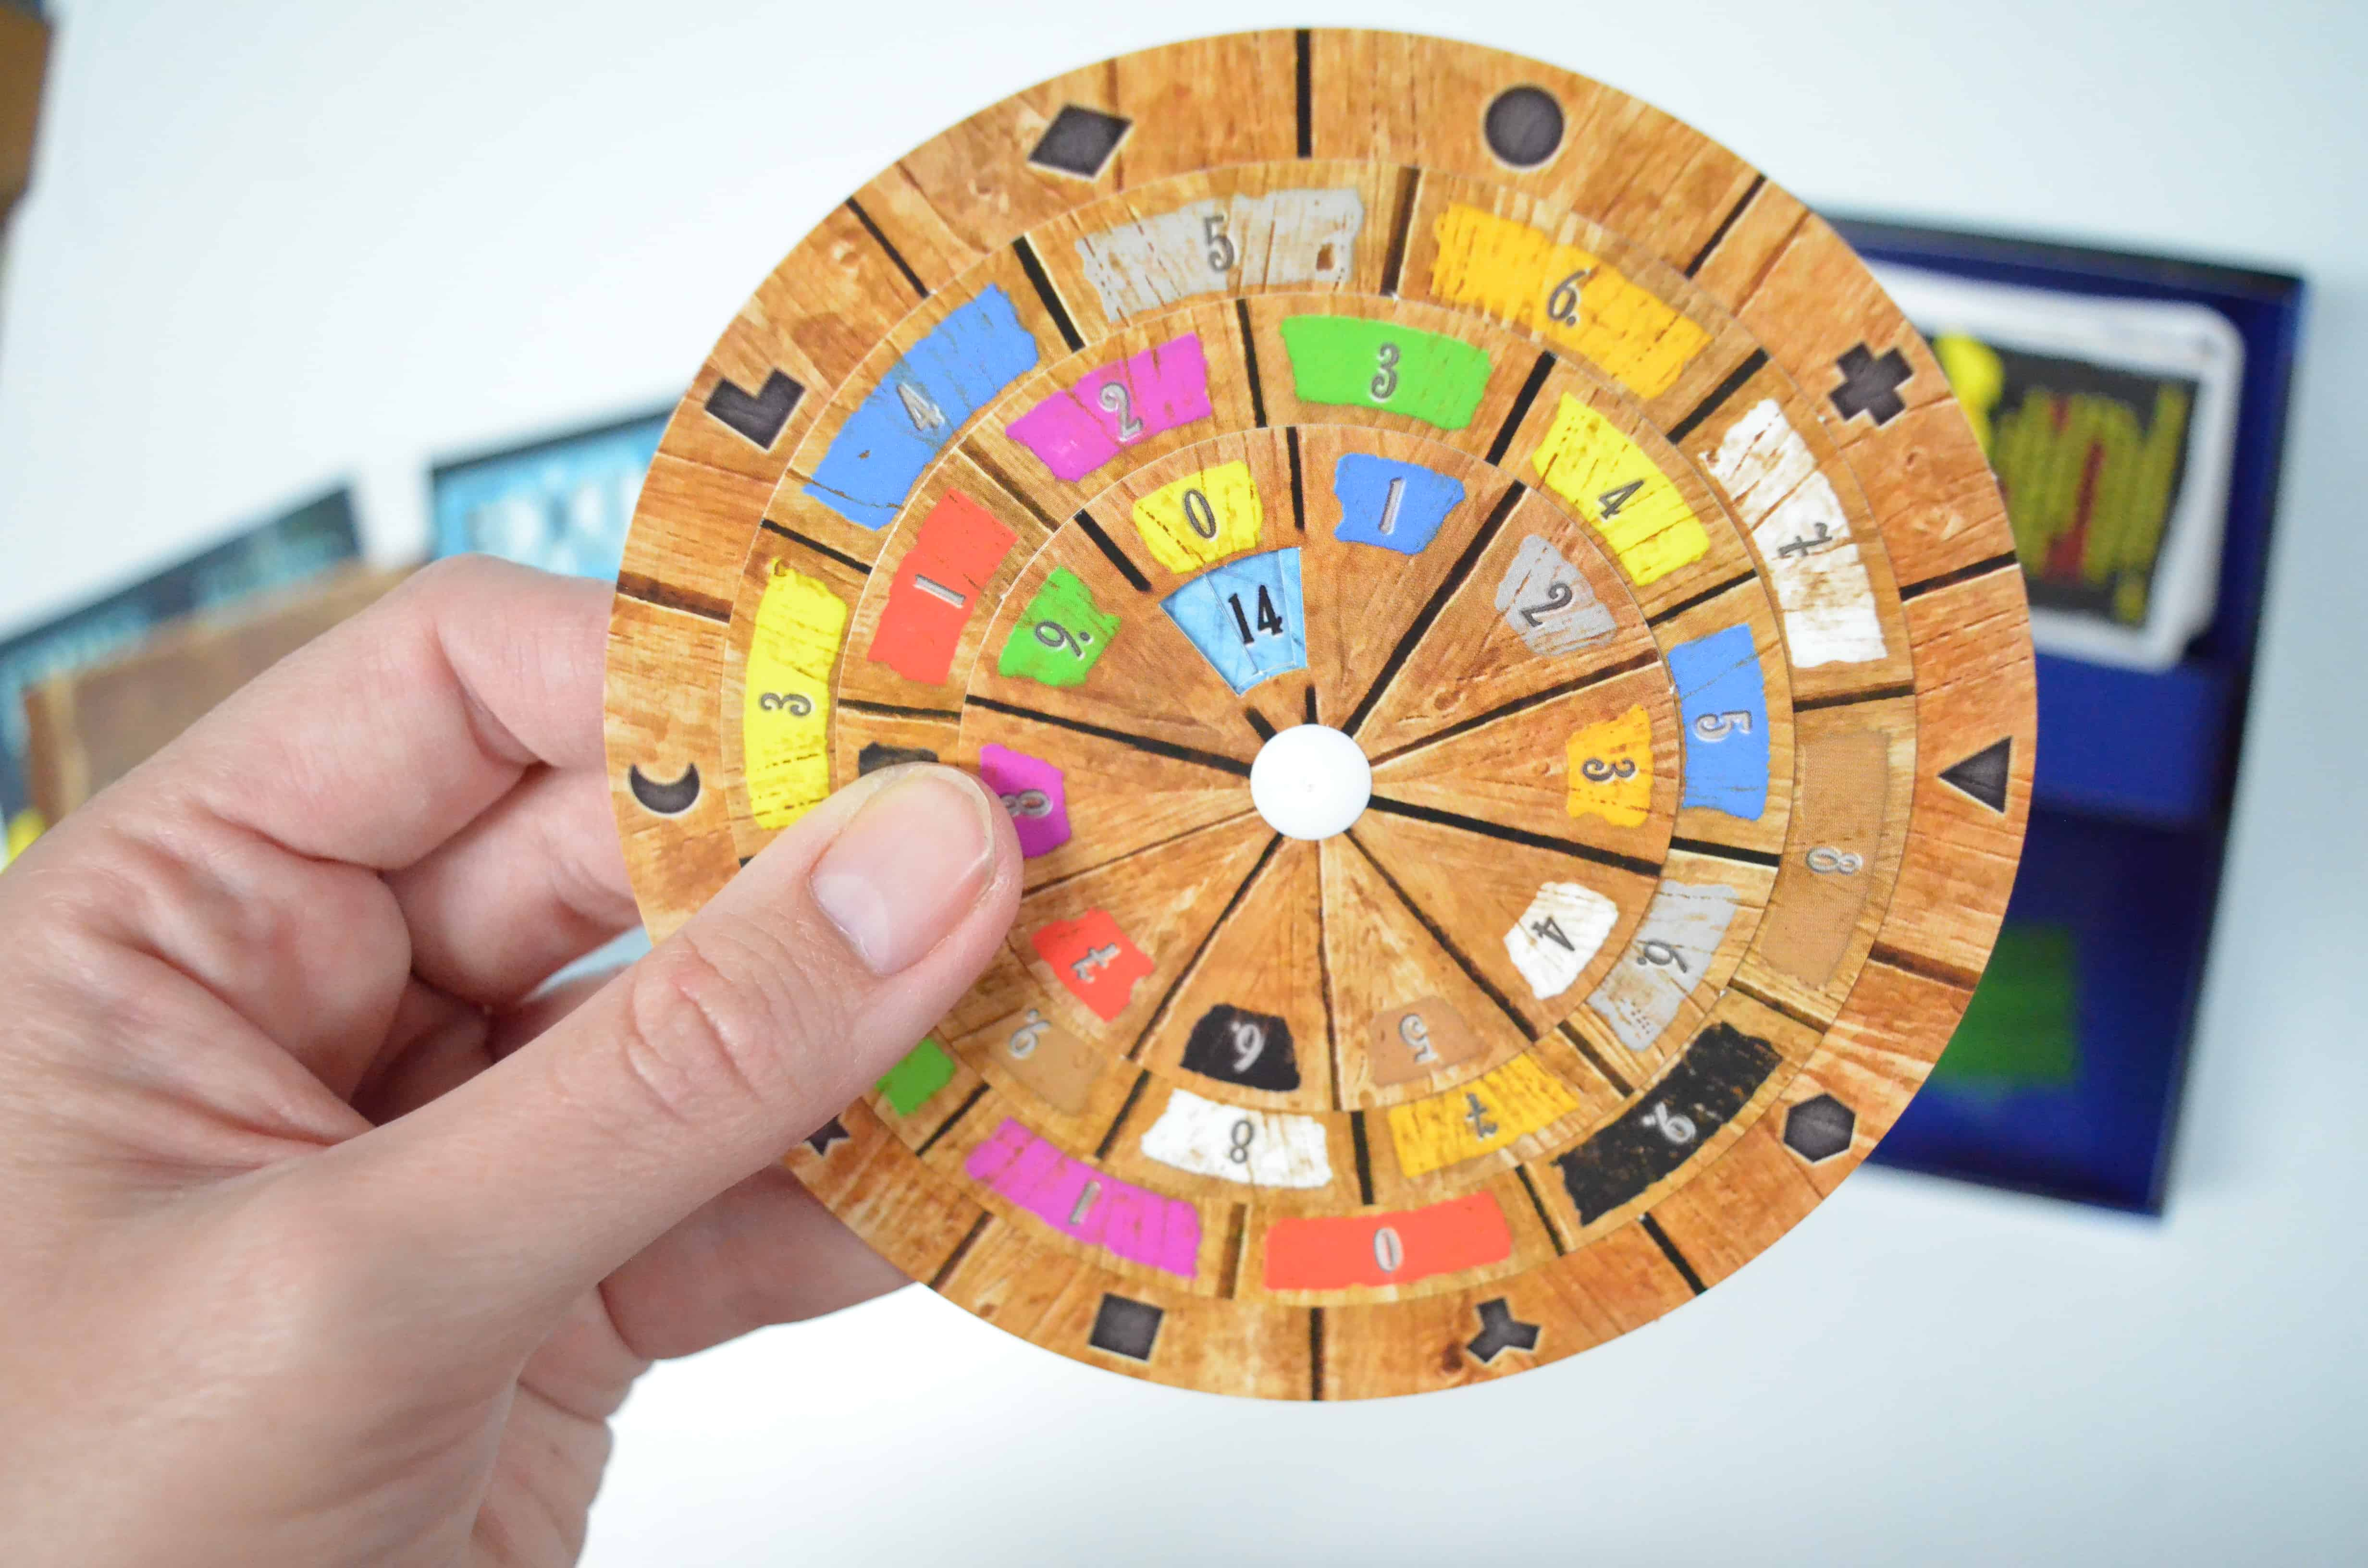 decoding wheel EXIT: The Game series